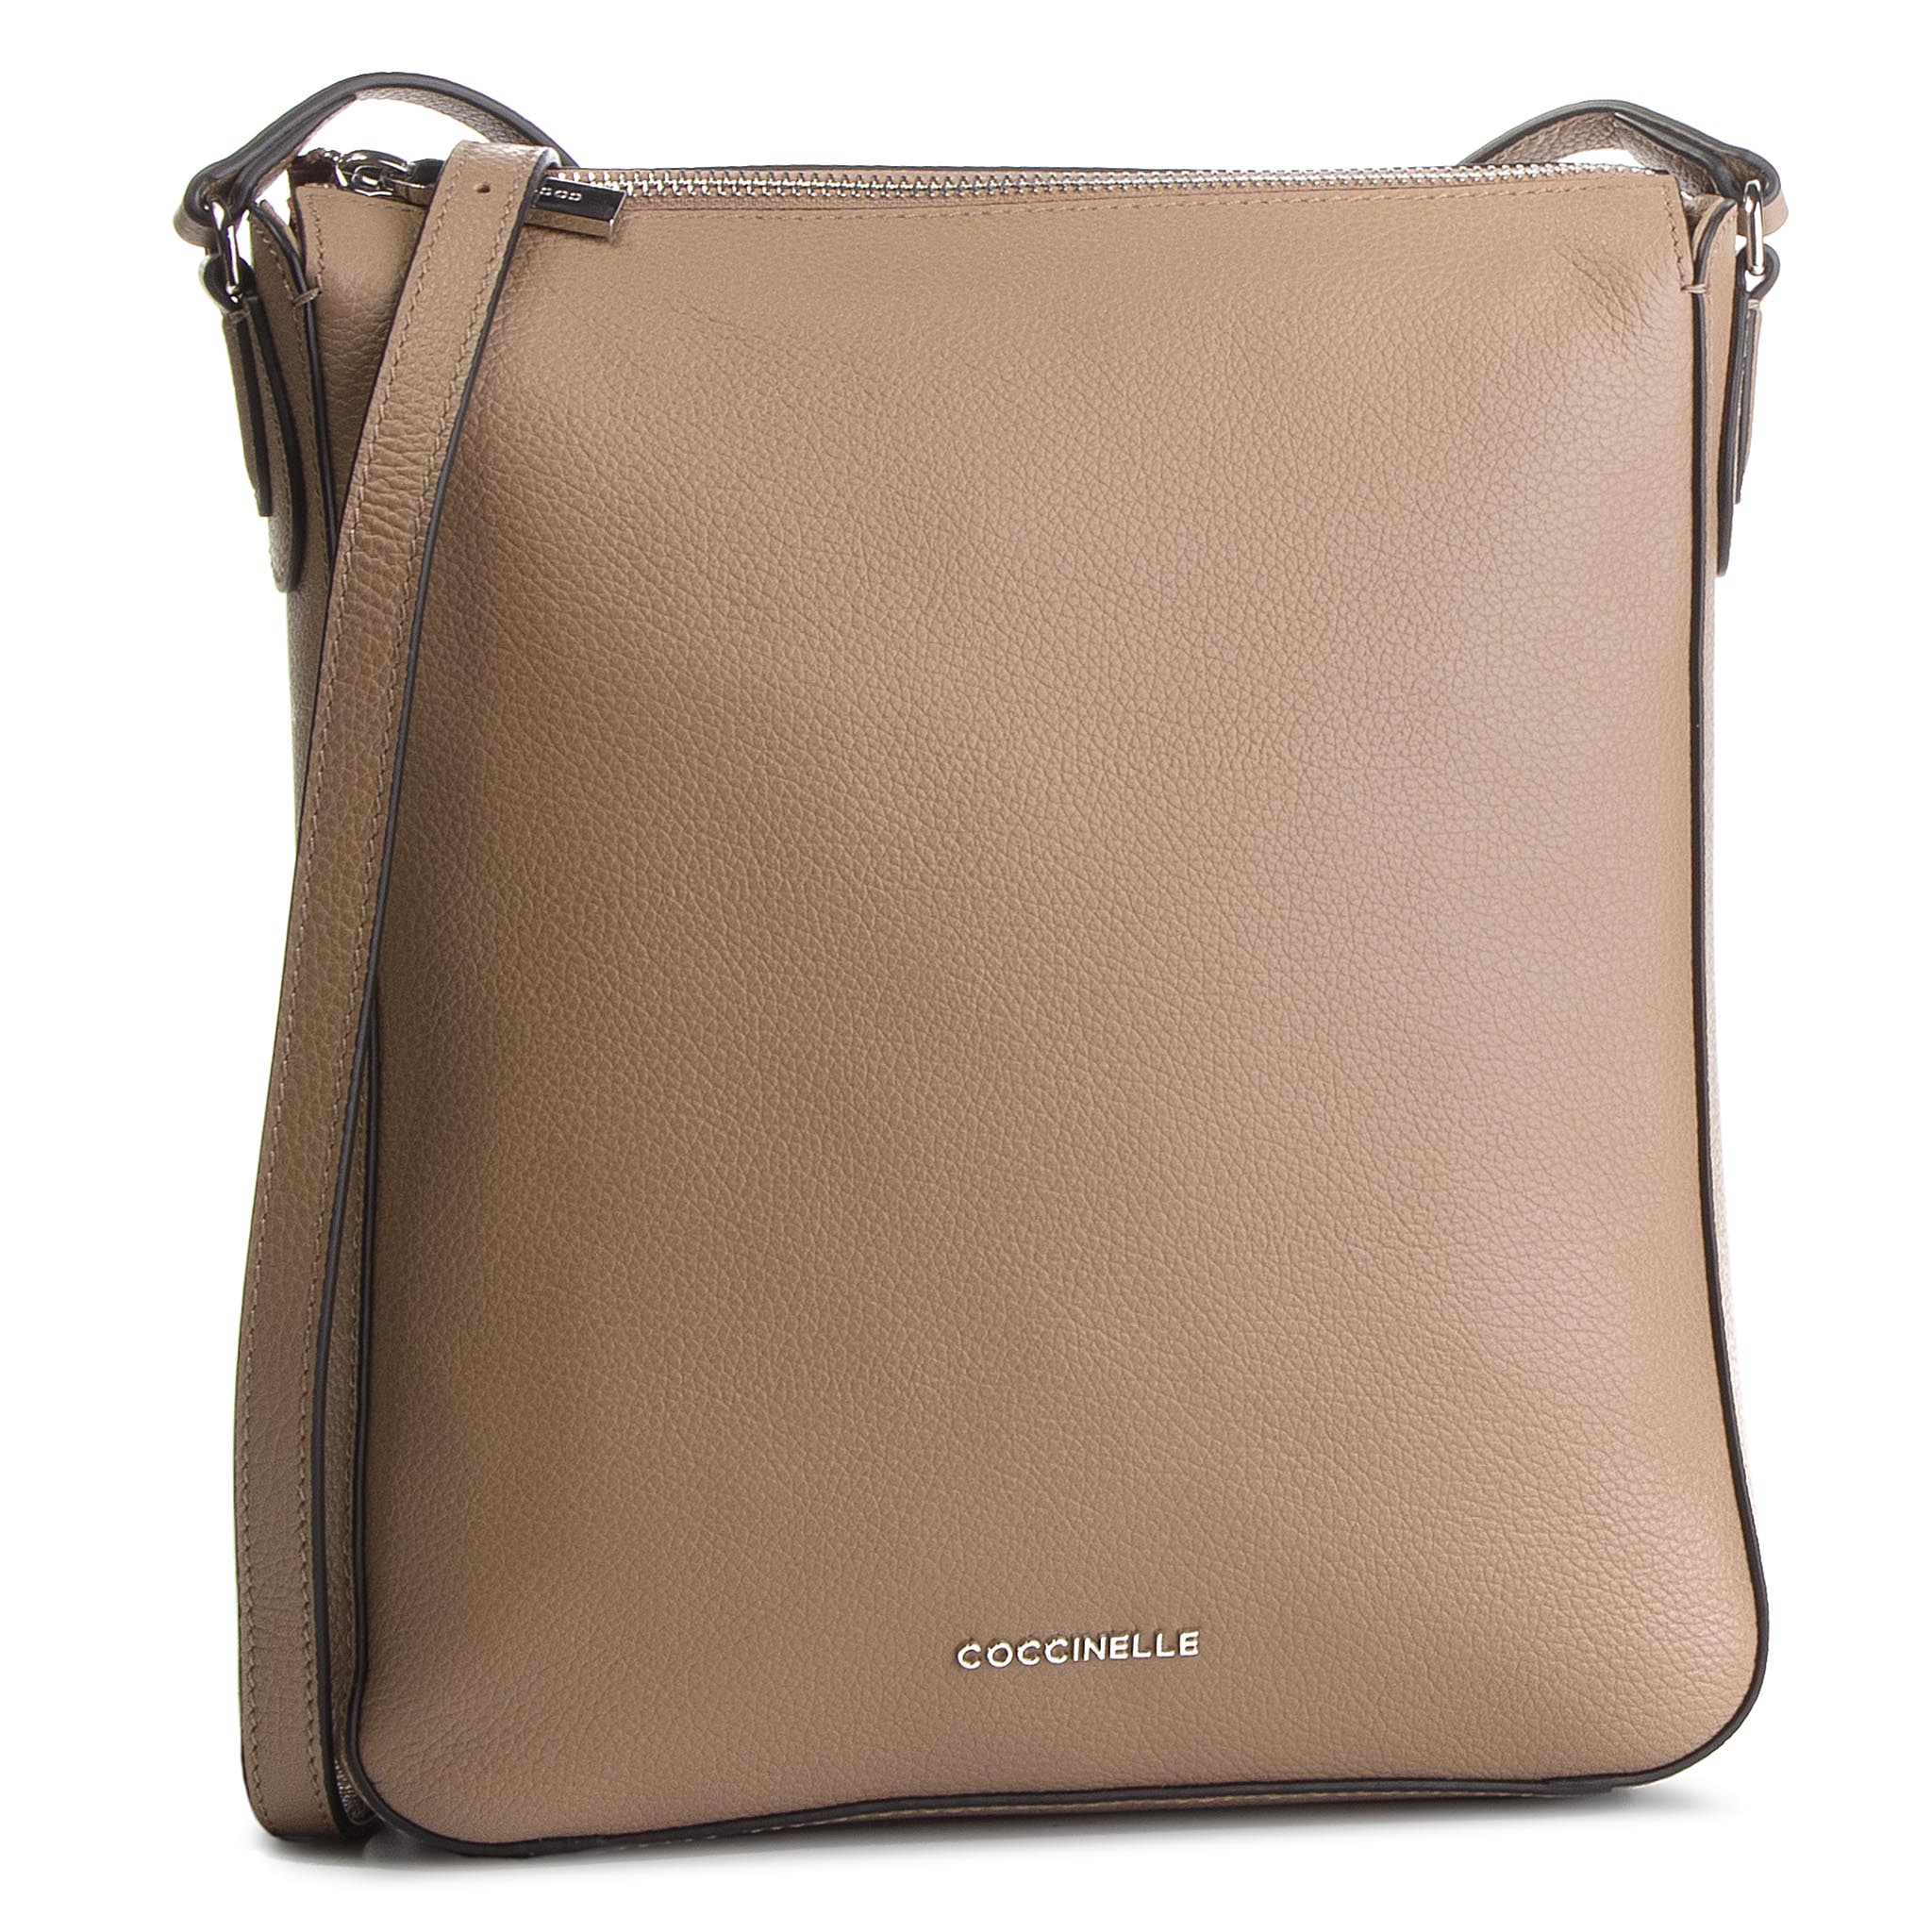 Geantă COCCINELLE - DQ0 Lulin Soft E1 DQ0 15 01 01 Taupe N75